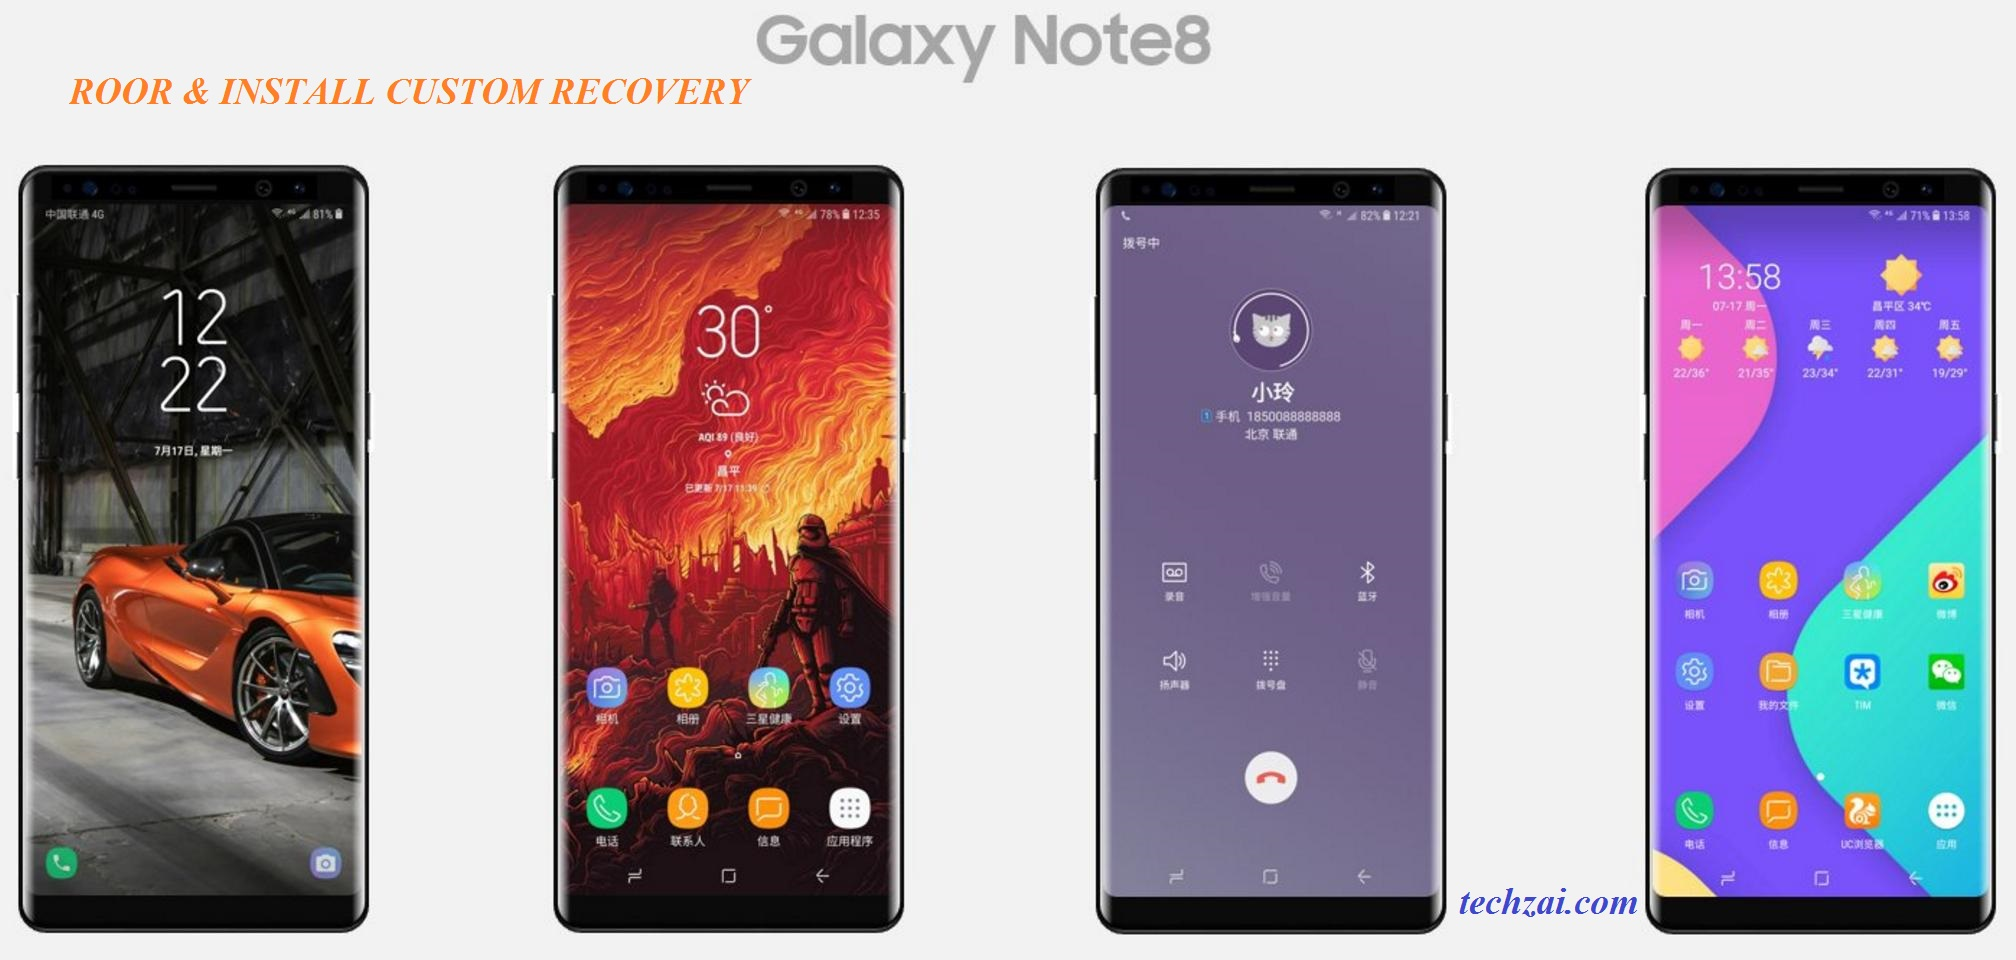 How To Root And Install Custom Recovery On Samsung Galaxy Note 8